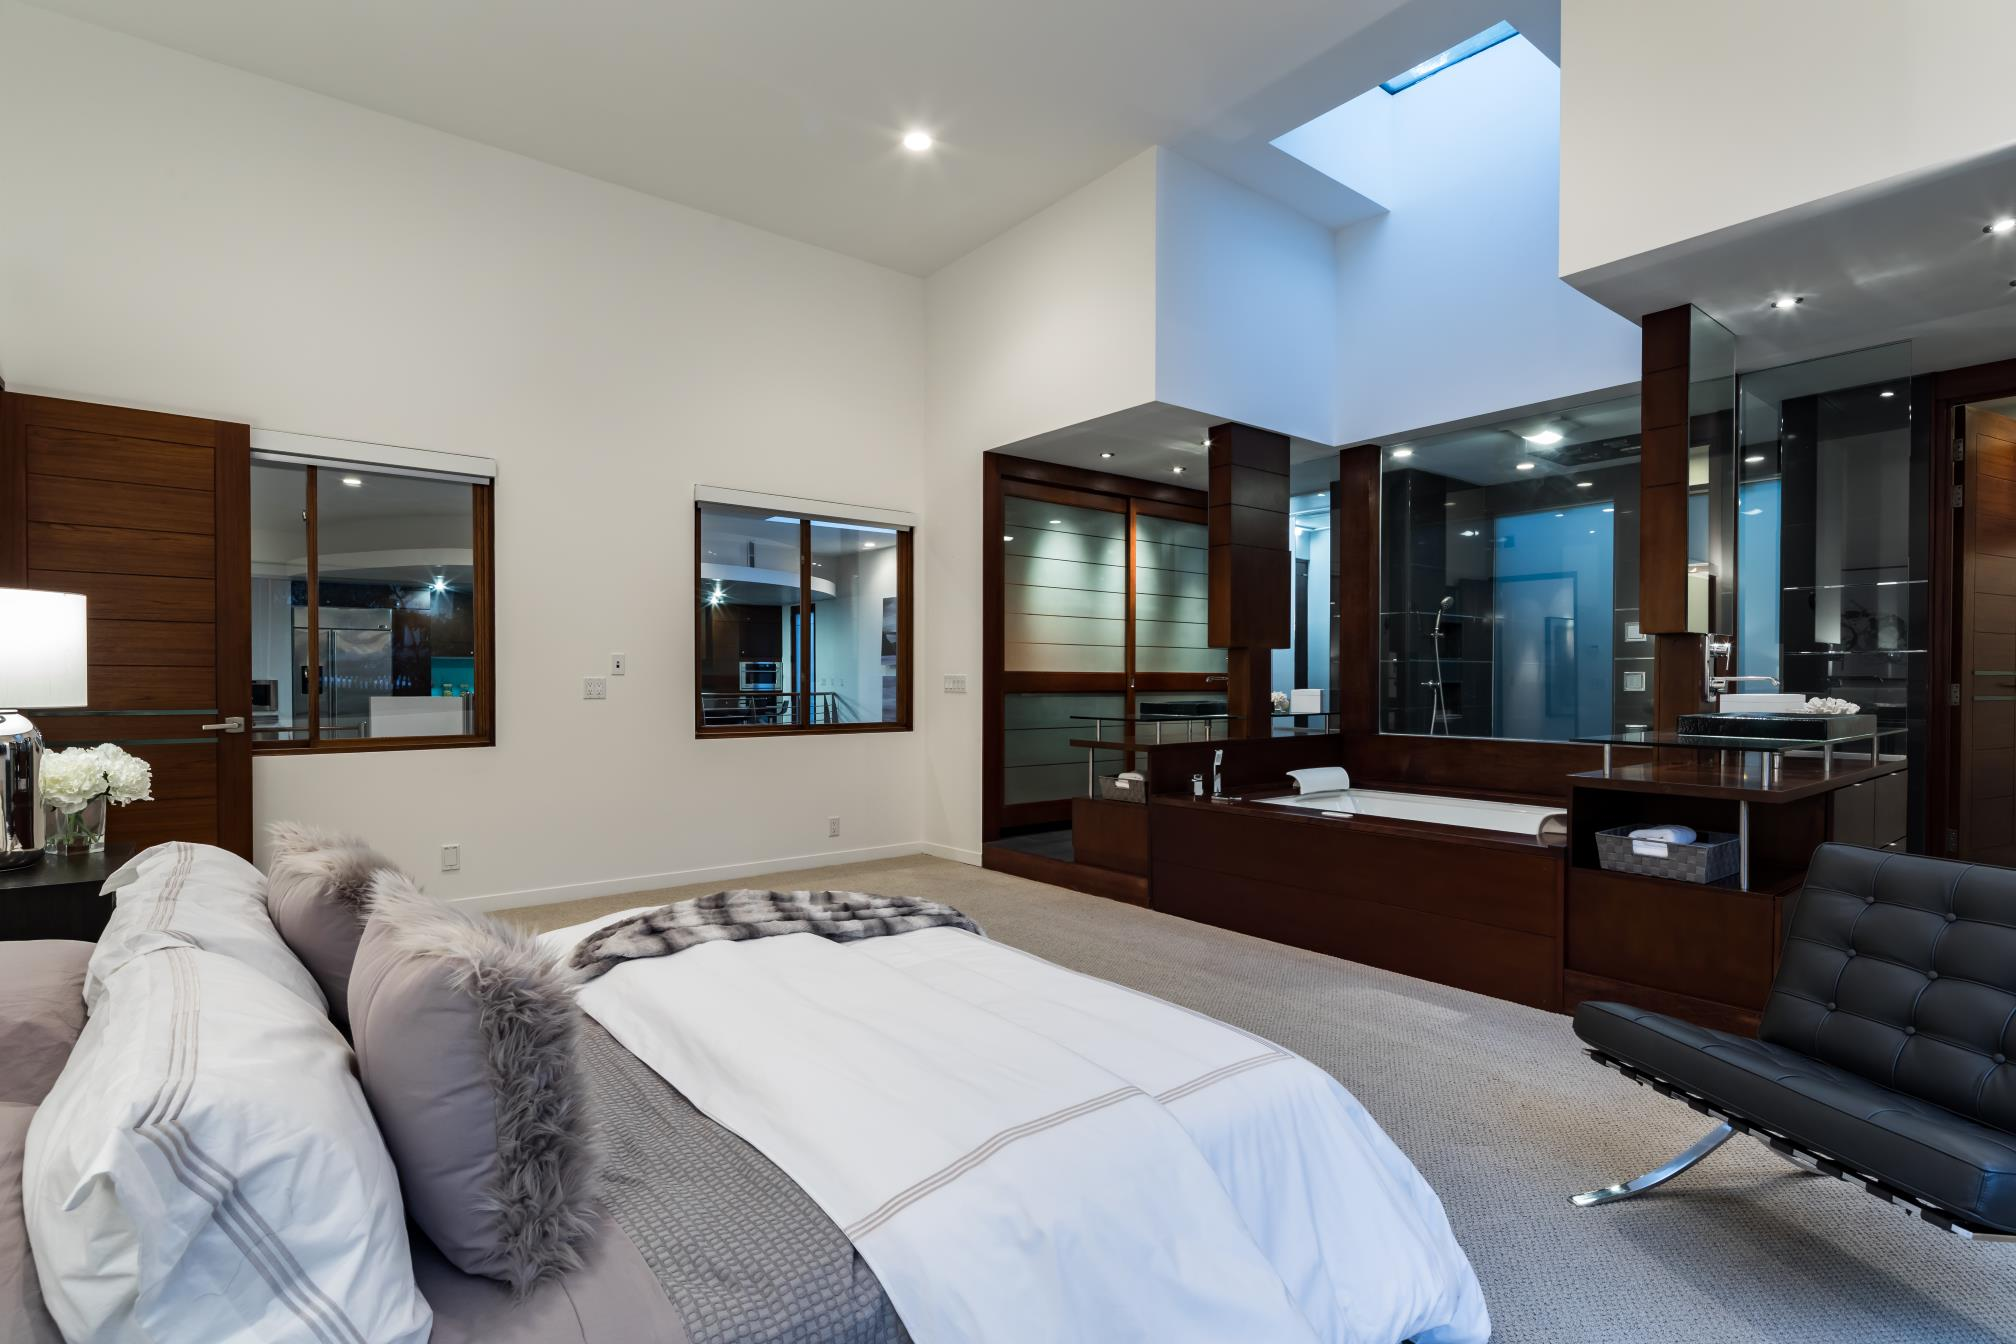 Modern Master bed room, interior design, Los Altos